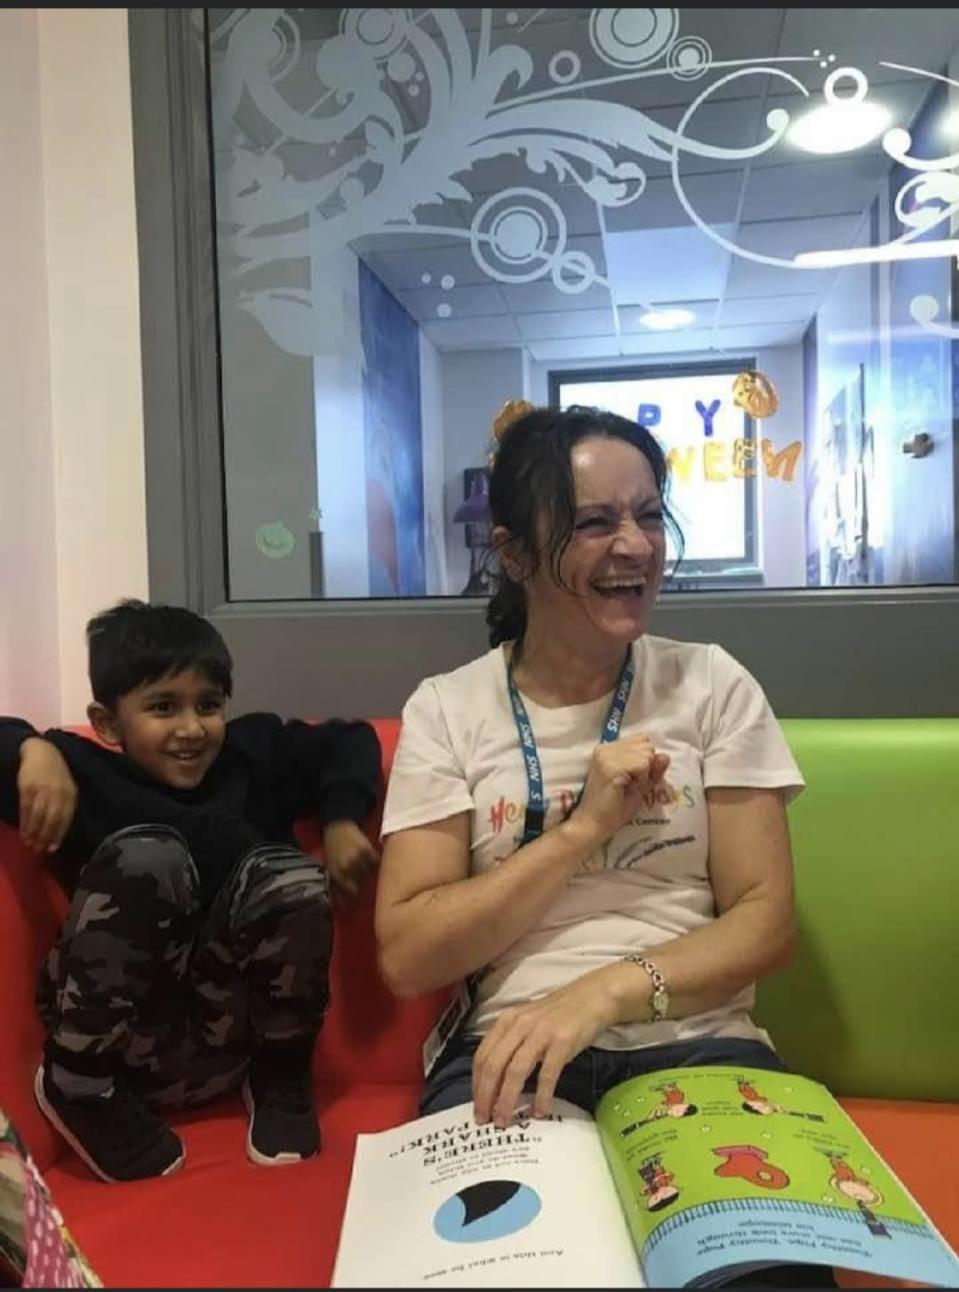 Saahib with Shelley O'Brien, storyteller at Great North Children's Hospital (The Randhawa family/PA)